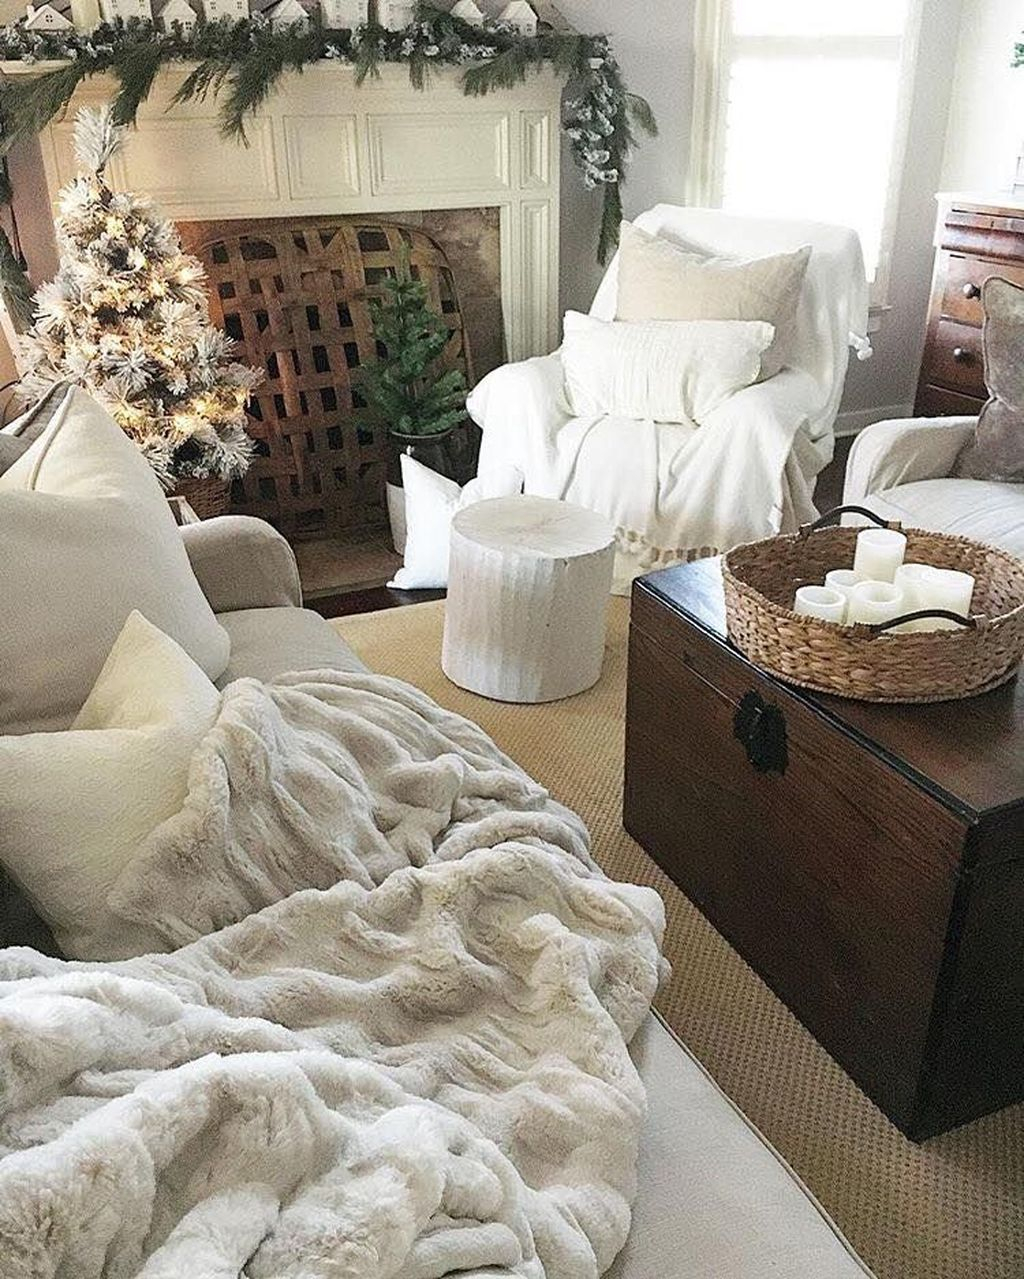 Cute Homes Decor Ideas To Snuggle In This Winter 27